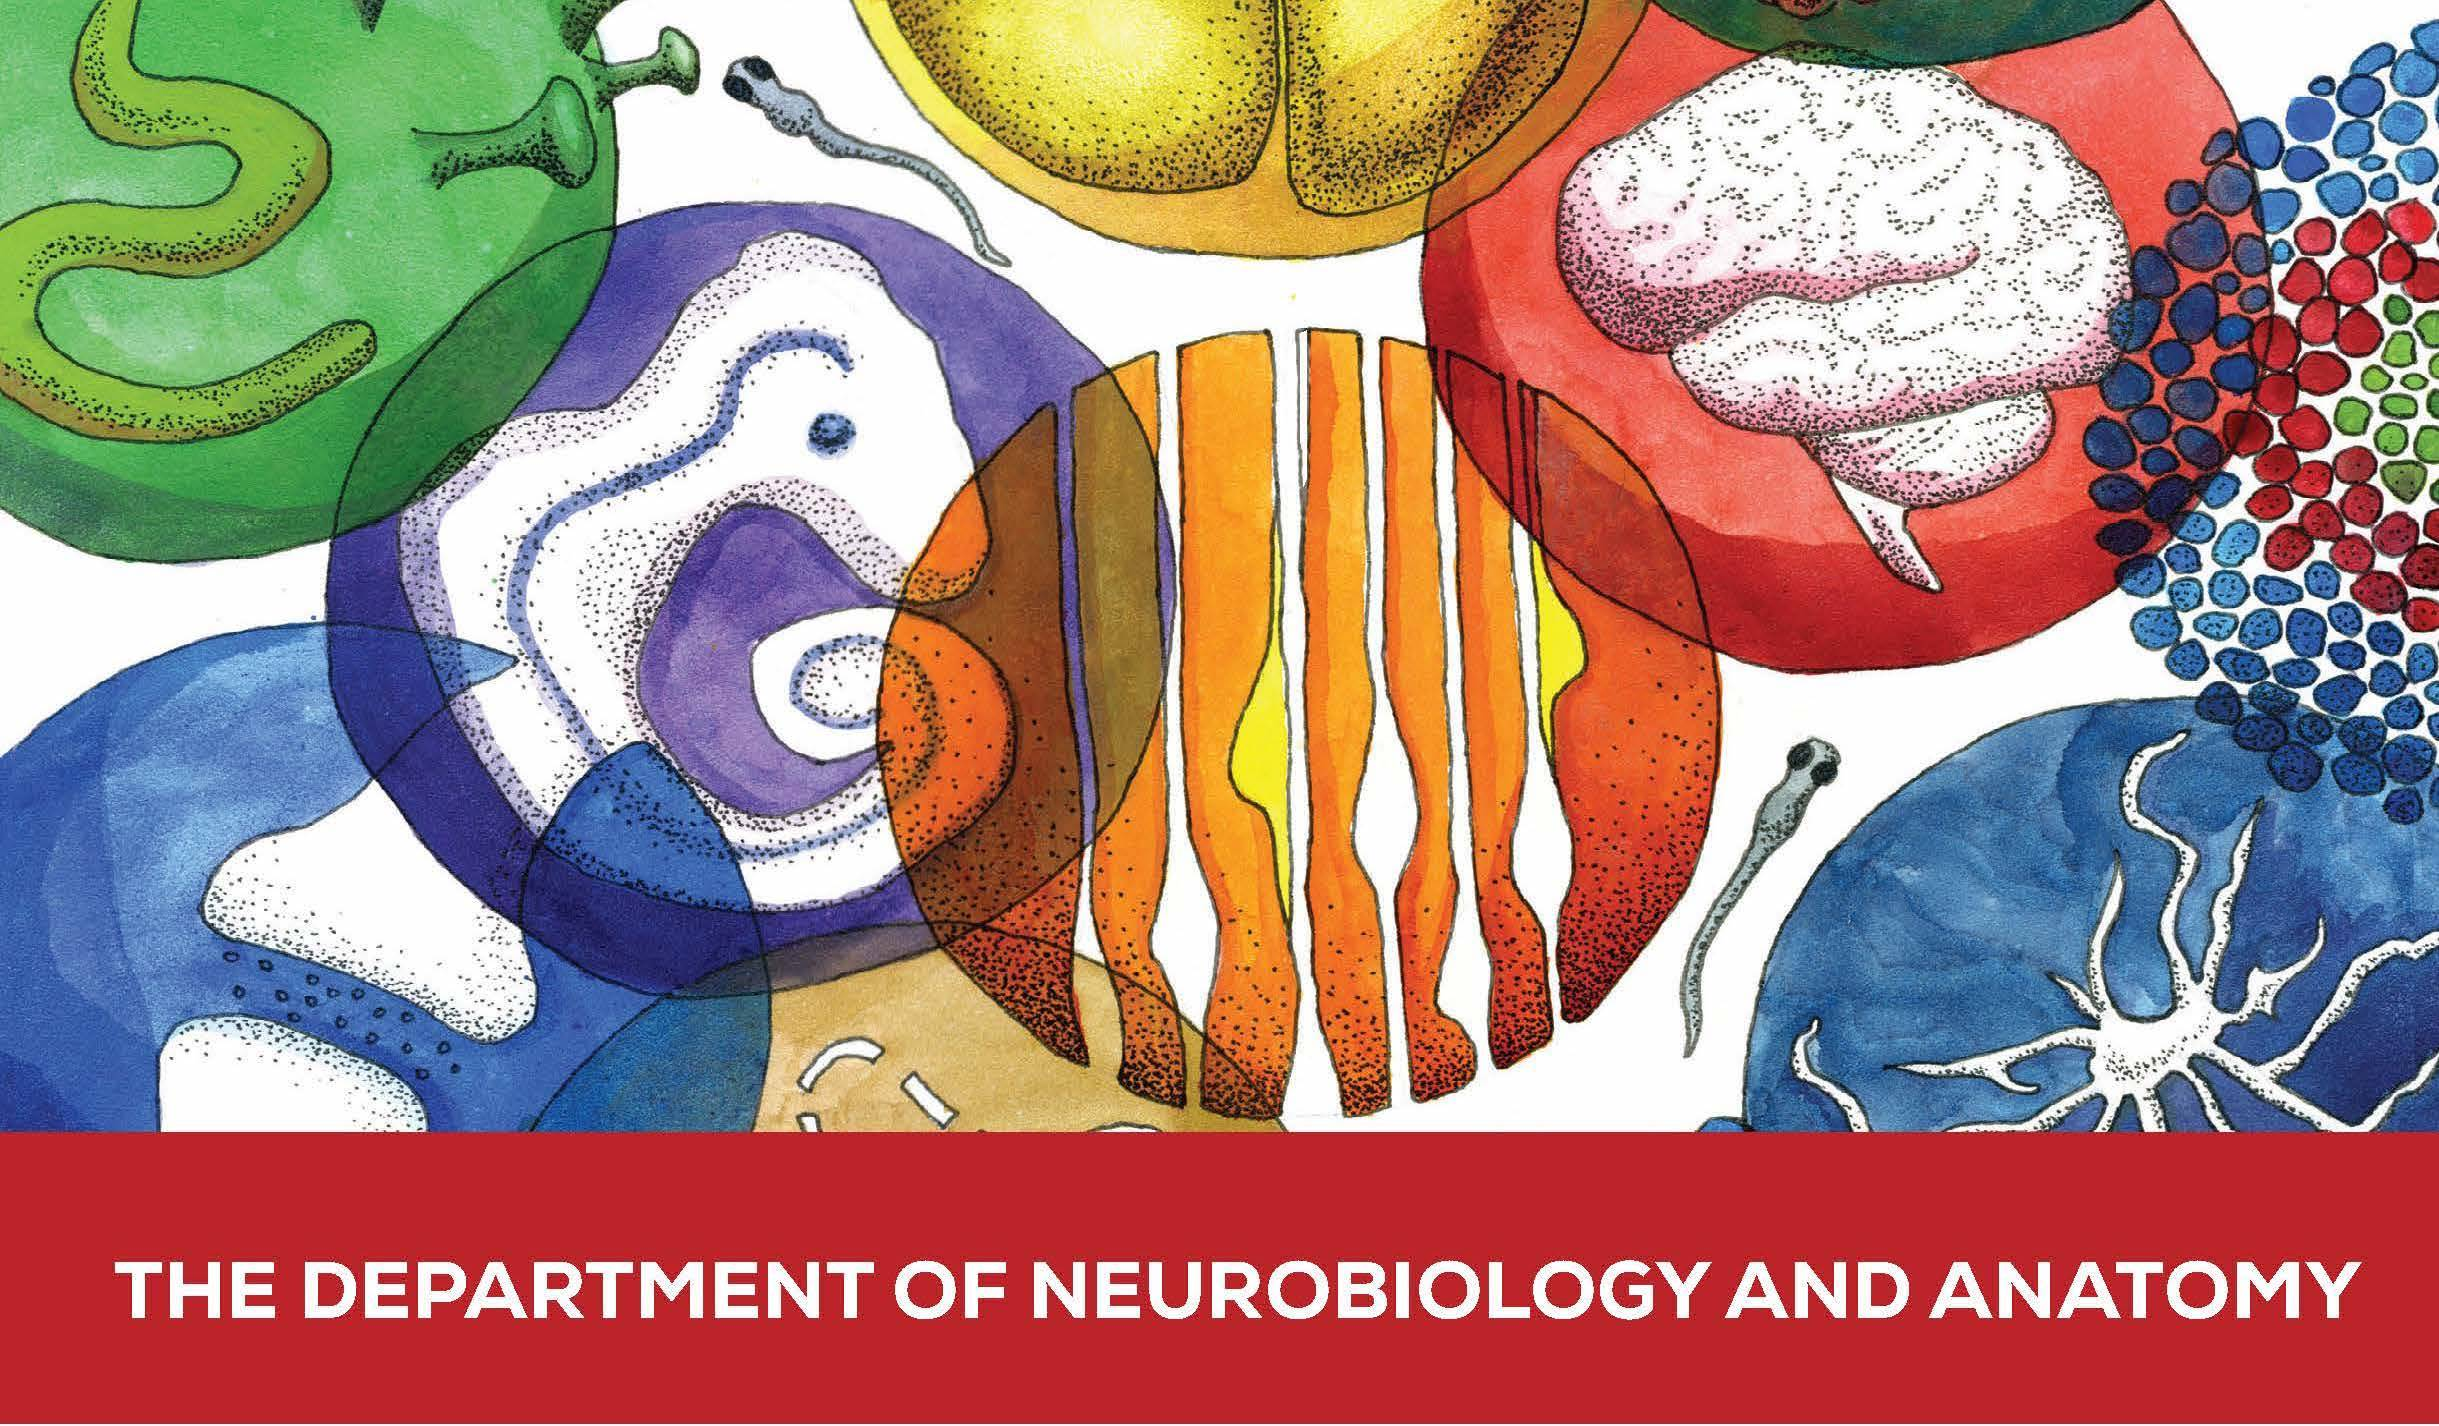 Department of Neurobiology and Anatomy